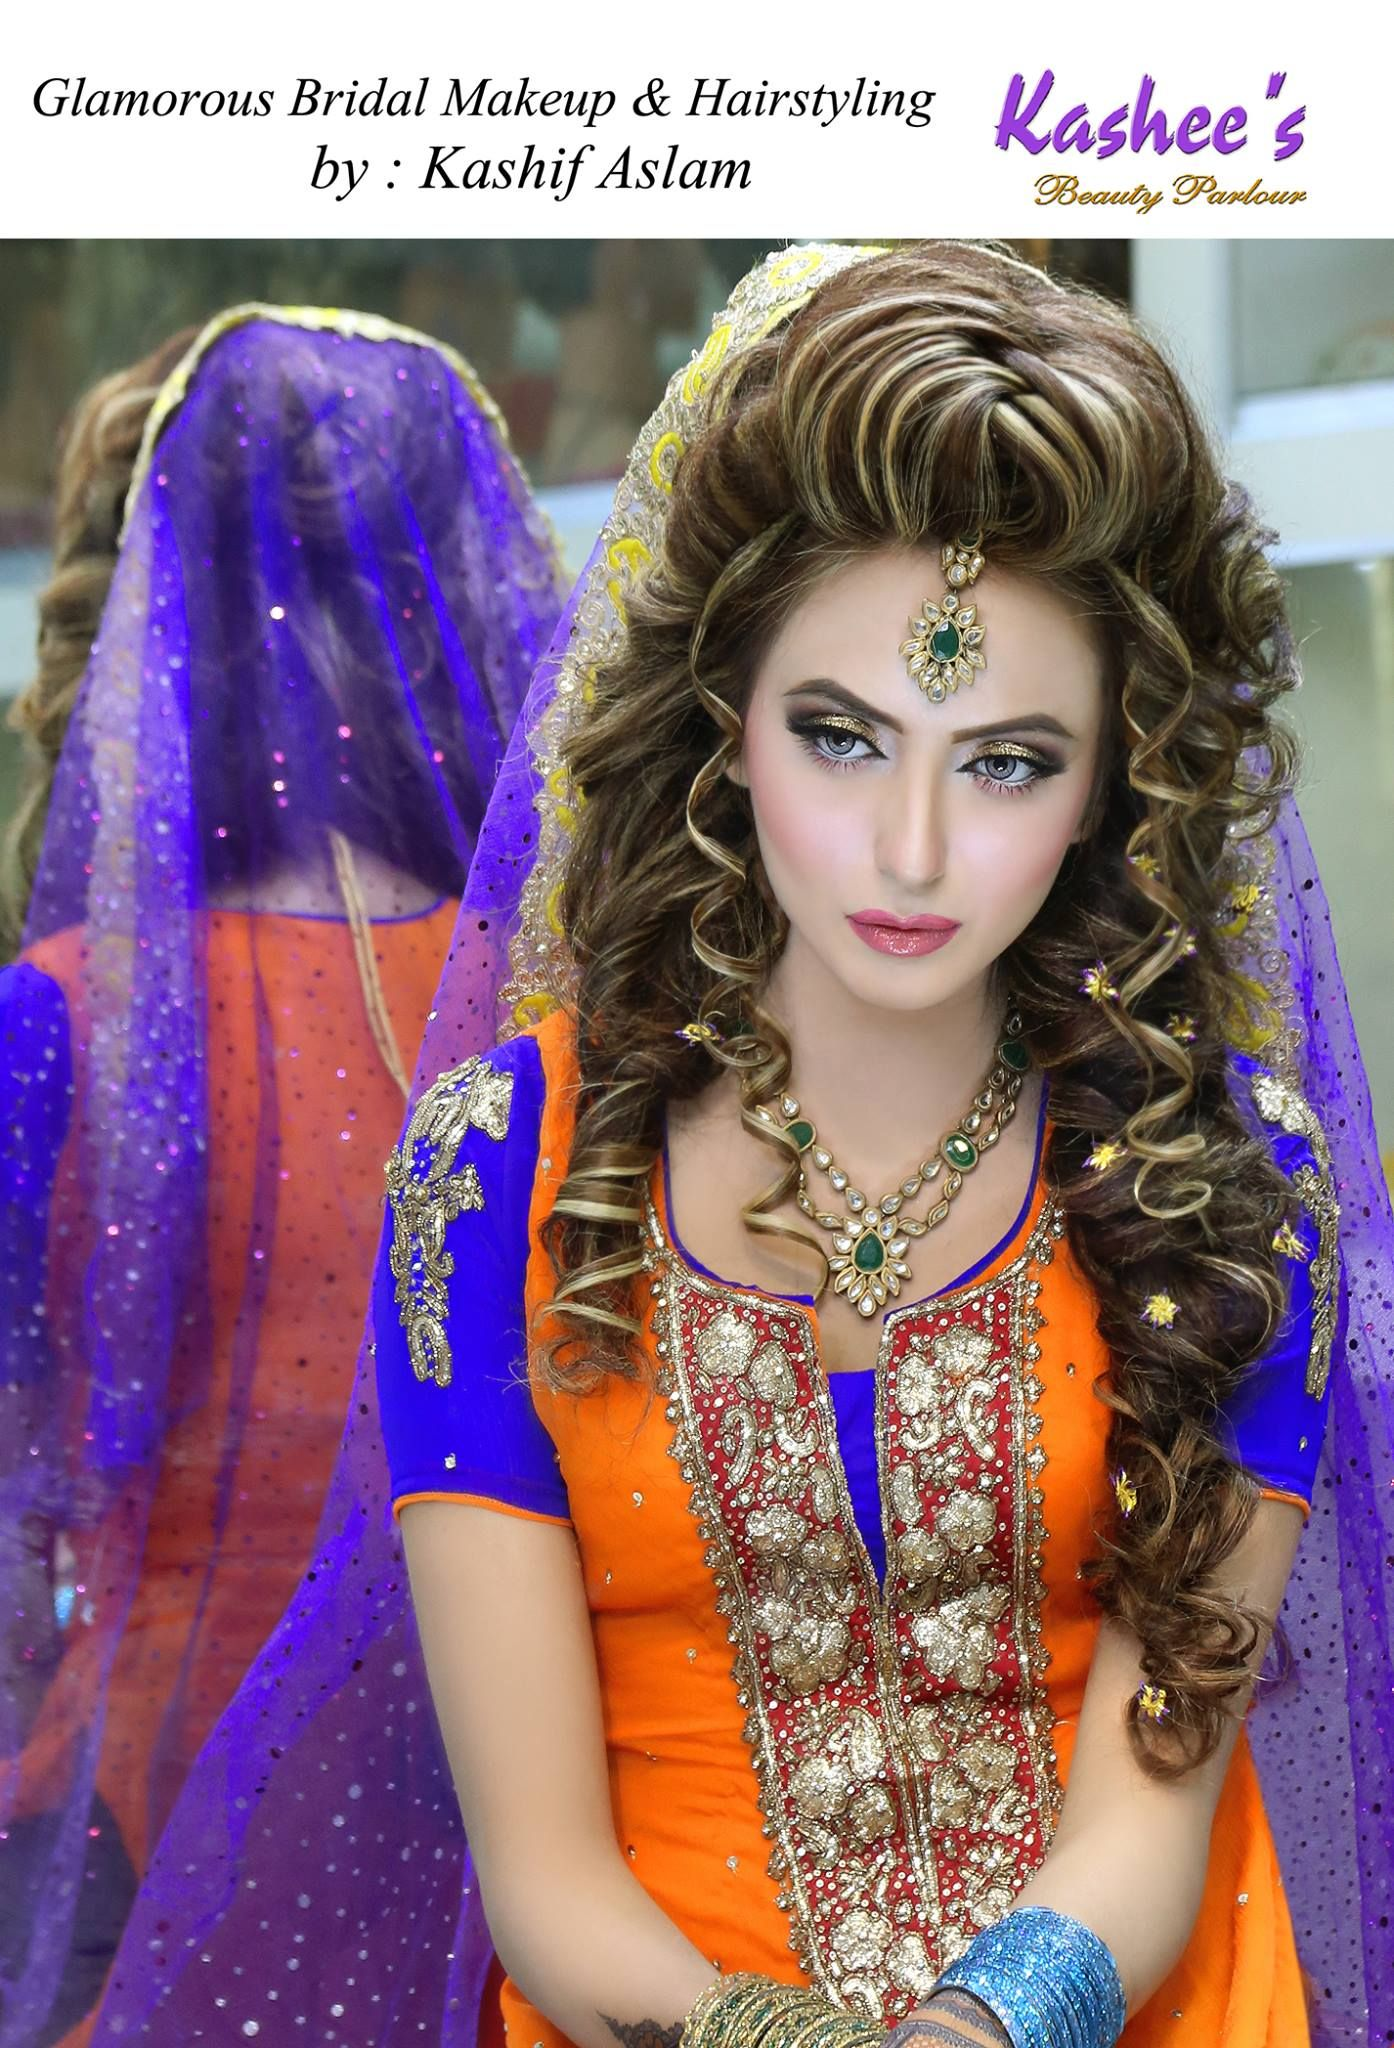 Makeup By Kashif Aslam By Kashee S Beauty Parlour